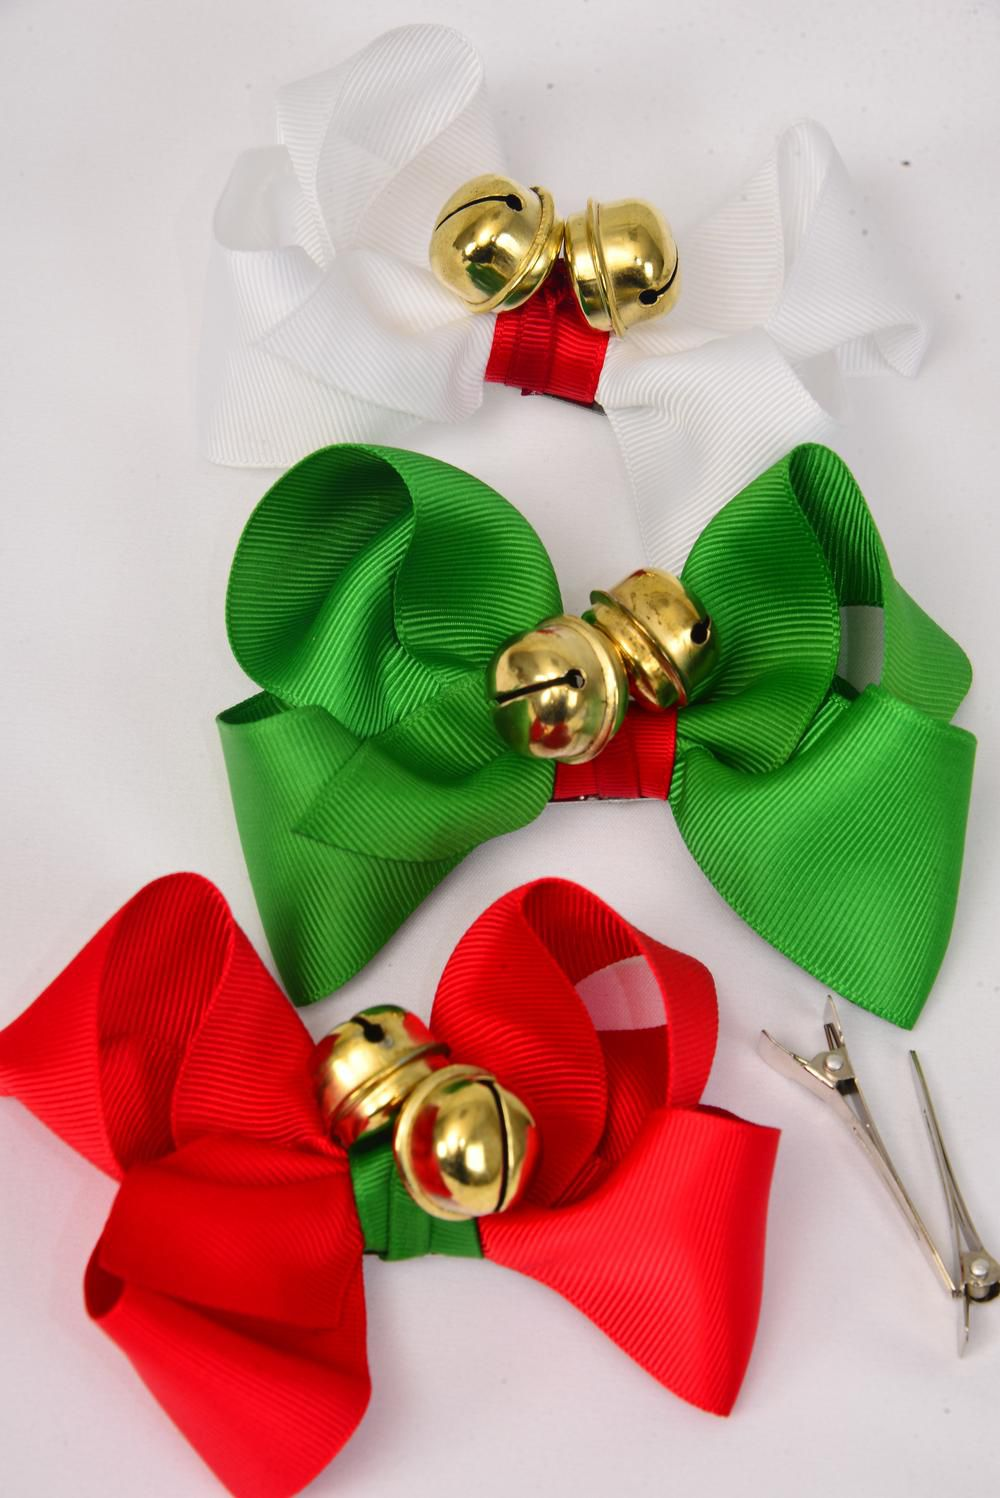 "Hair Bow Large Xmas Jingle Bells 4""x 3"" Wide Grosgrain Bow-tie/DZ ** Alligator Clip ** Size-4""x 3"" Wide,6 Red,4 Green,2 White,3 Color Asst,W Display Card & UPC Code,Clear Box"